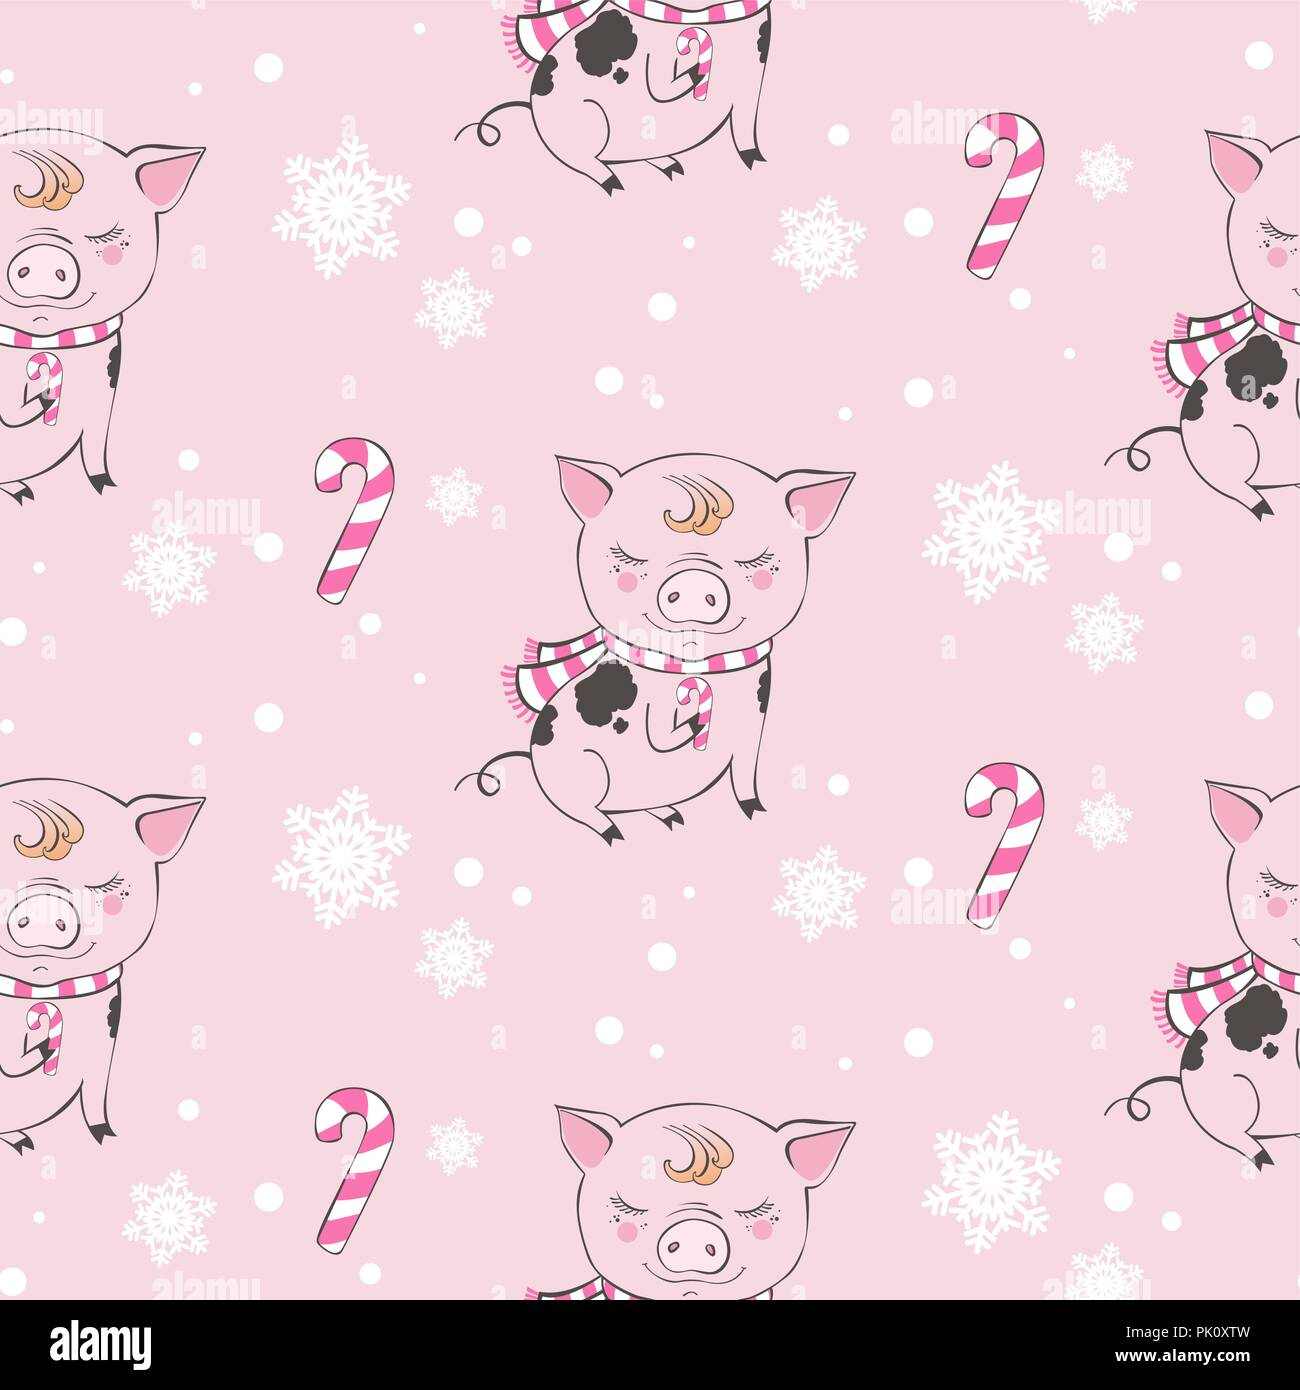 Set Of Cute Pig Cartoon Seamless Characters Pattern Chinese Symbol Of The 2019 Year Happy New Year Cute Funny Piggy Illustration Stock Vector Image Art Alamy